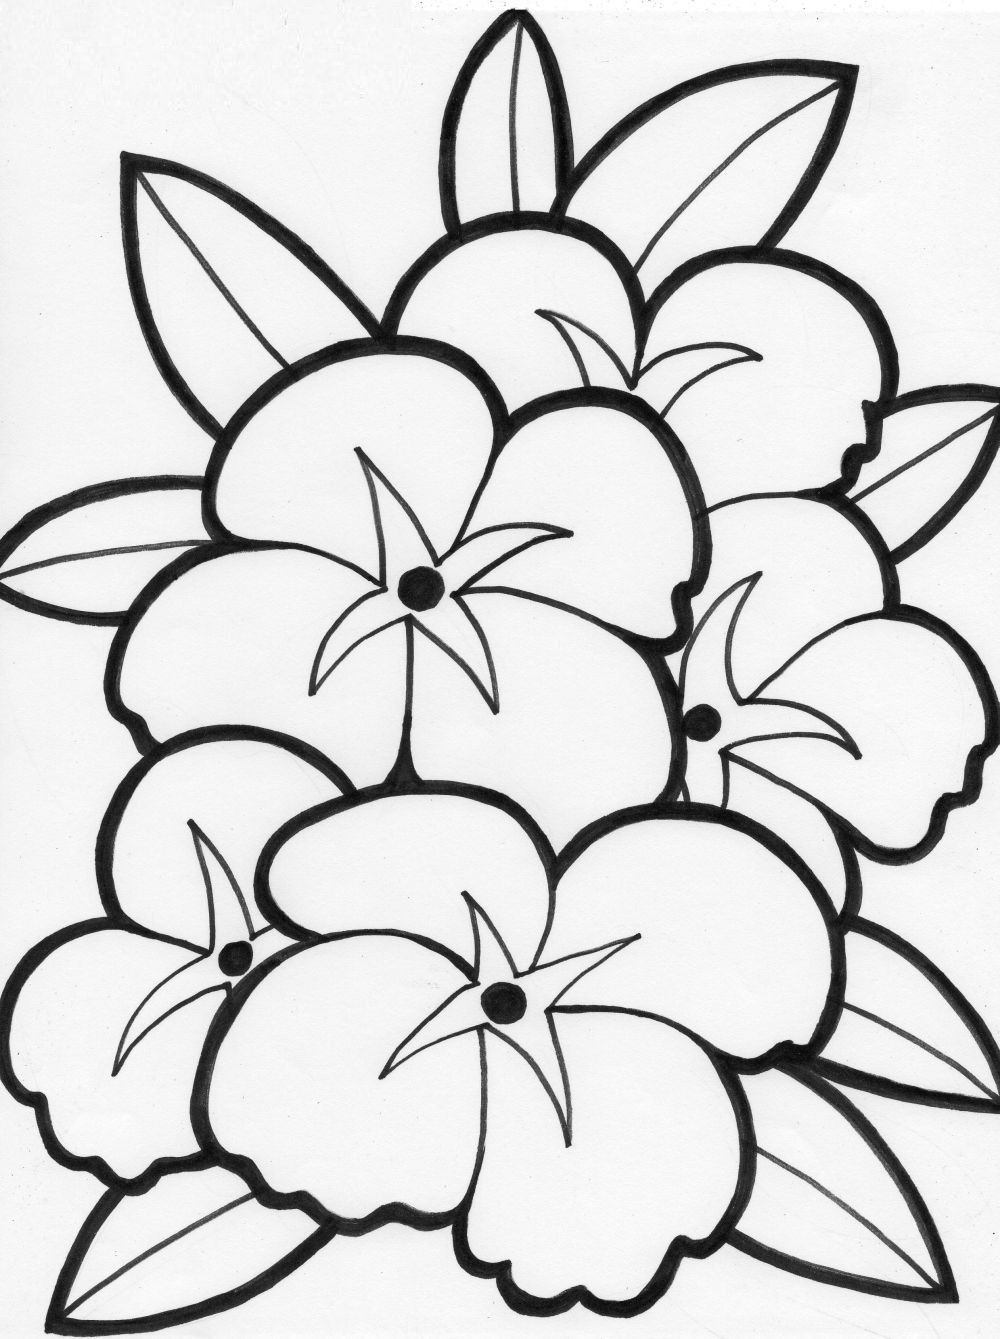 Coloring Pages Of Flowers For Teenagers Difficult Only Coloring Pages Printable Flower Coloring Pages Mandala Coloring Pages Flower Coloring Sheets